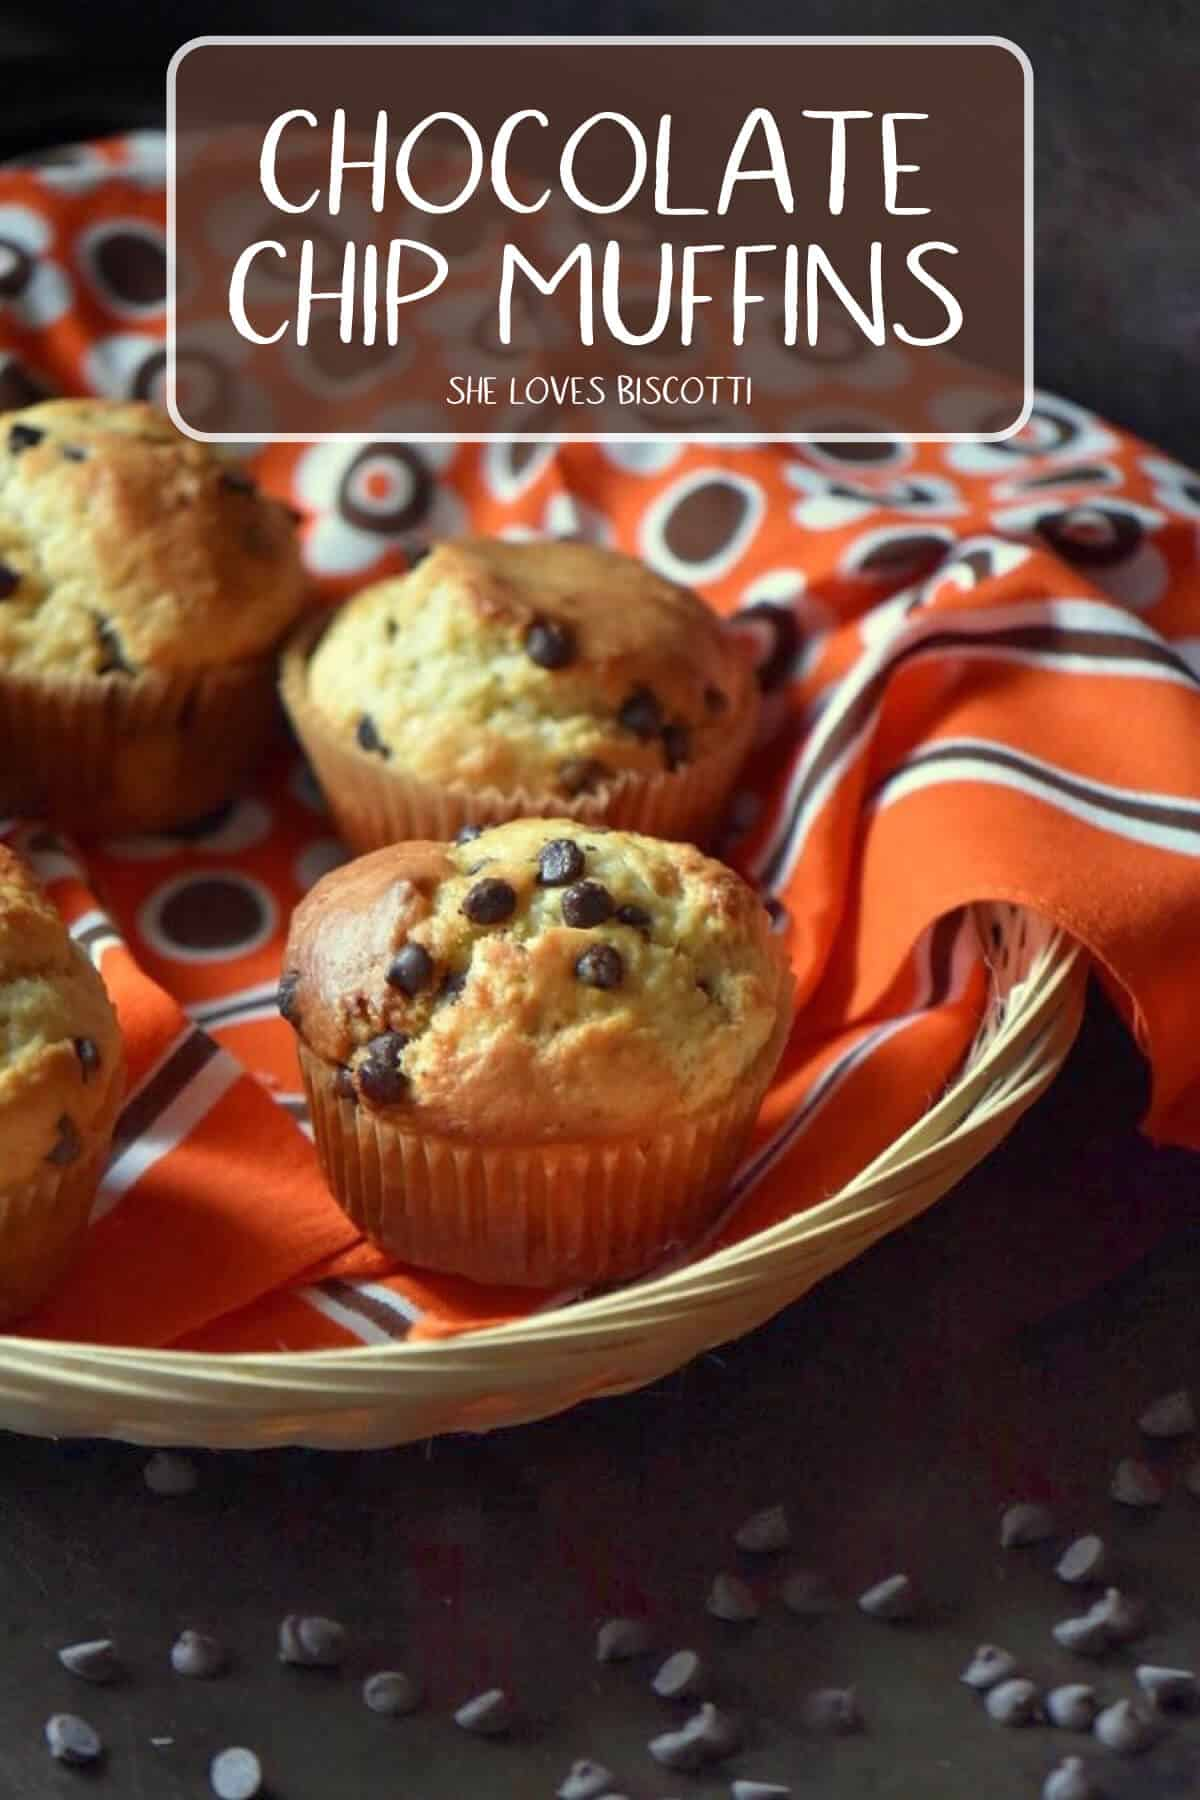 Here you have it! The best ever Chocolate Chip Muffins recipe and you won't believe how easy they are to make at home. #shelovesbiscotti #chocolatechipmuffins #chocolatechip #chocolatechips #bestmuffins #bestmuffin #easymuffinrecipe #bakerystylemuffins #muffins #chocolate #muffin #breakfast #brunch #easymuffin #quickbread #recipe #easy #homemade #bestever